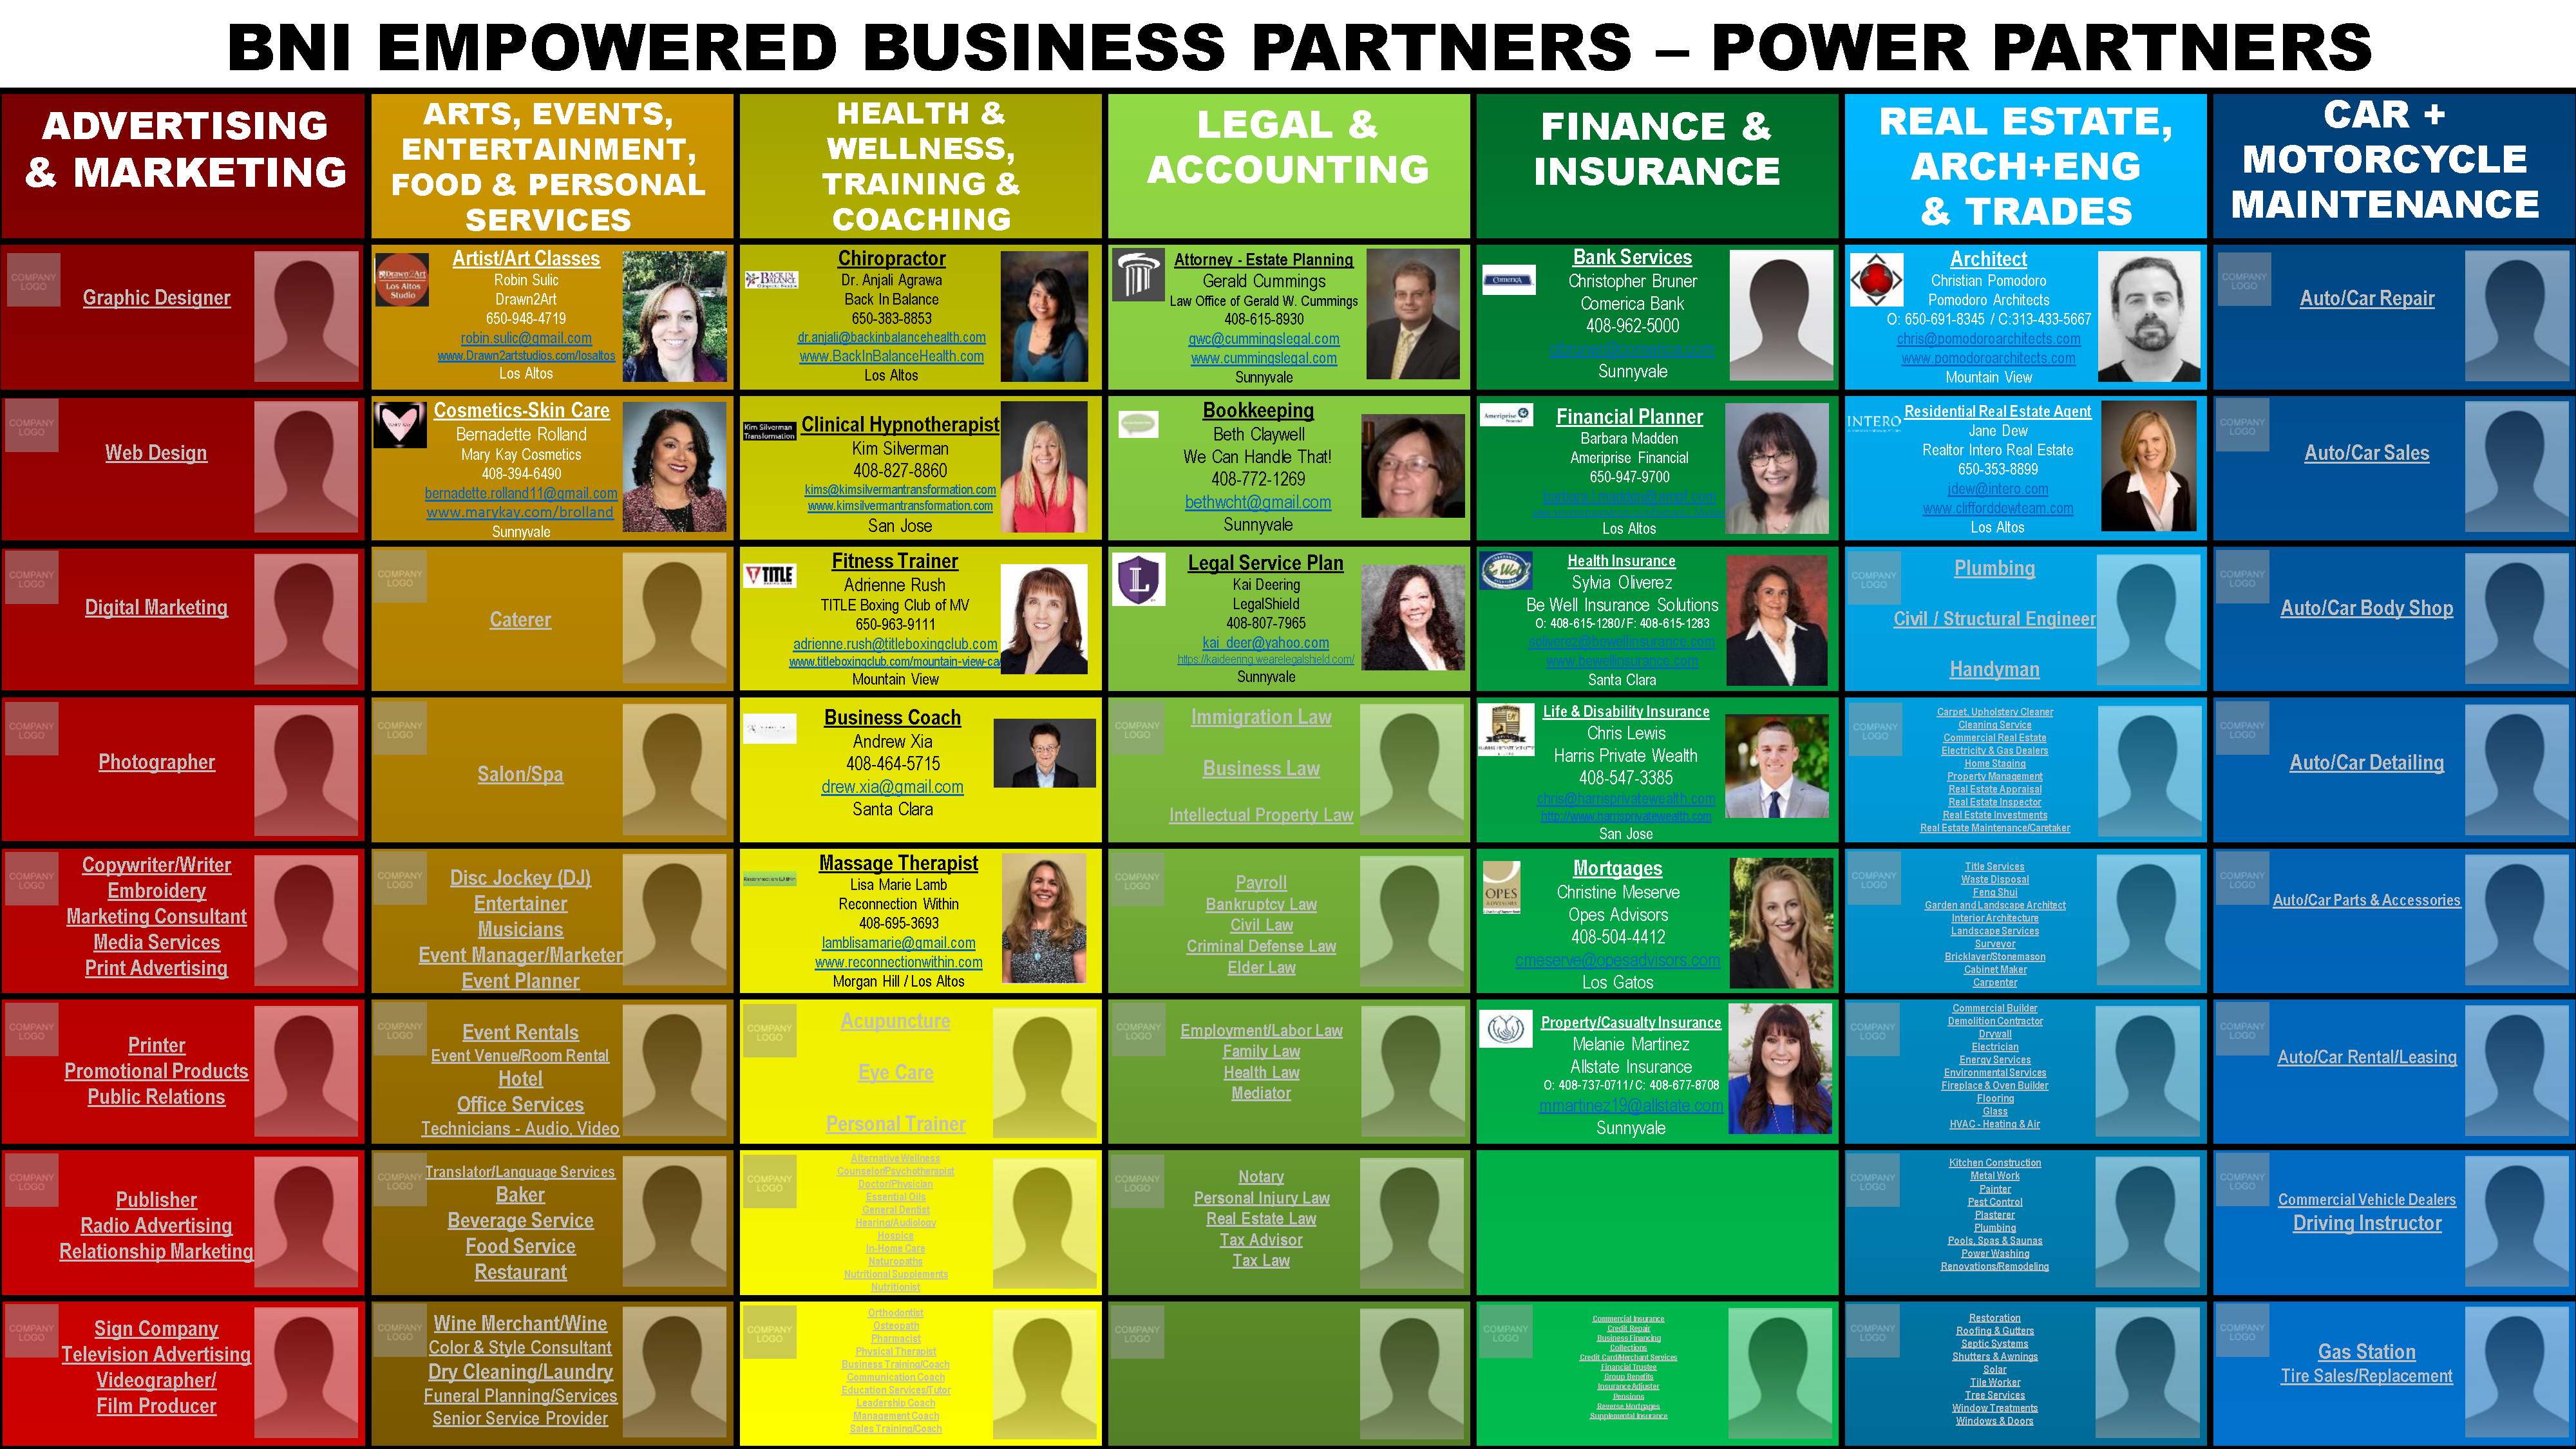 BNI Empowered Business Partners